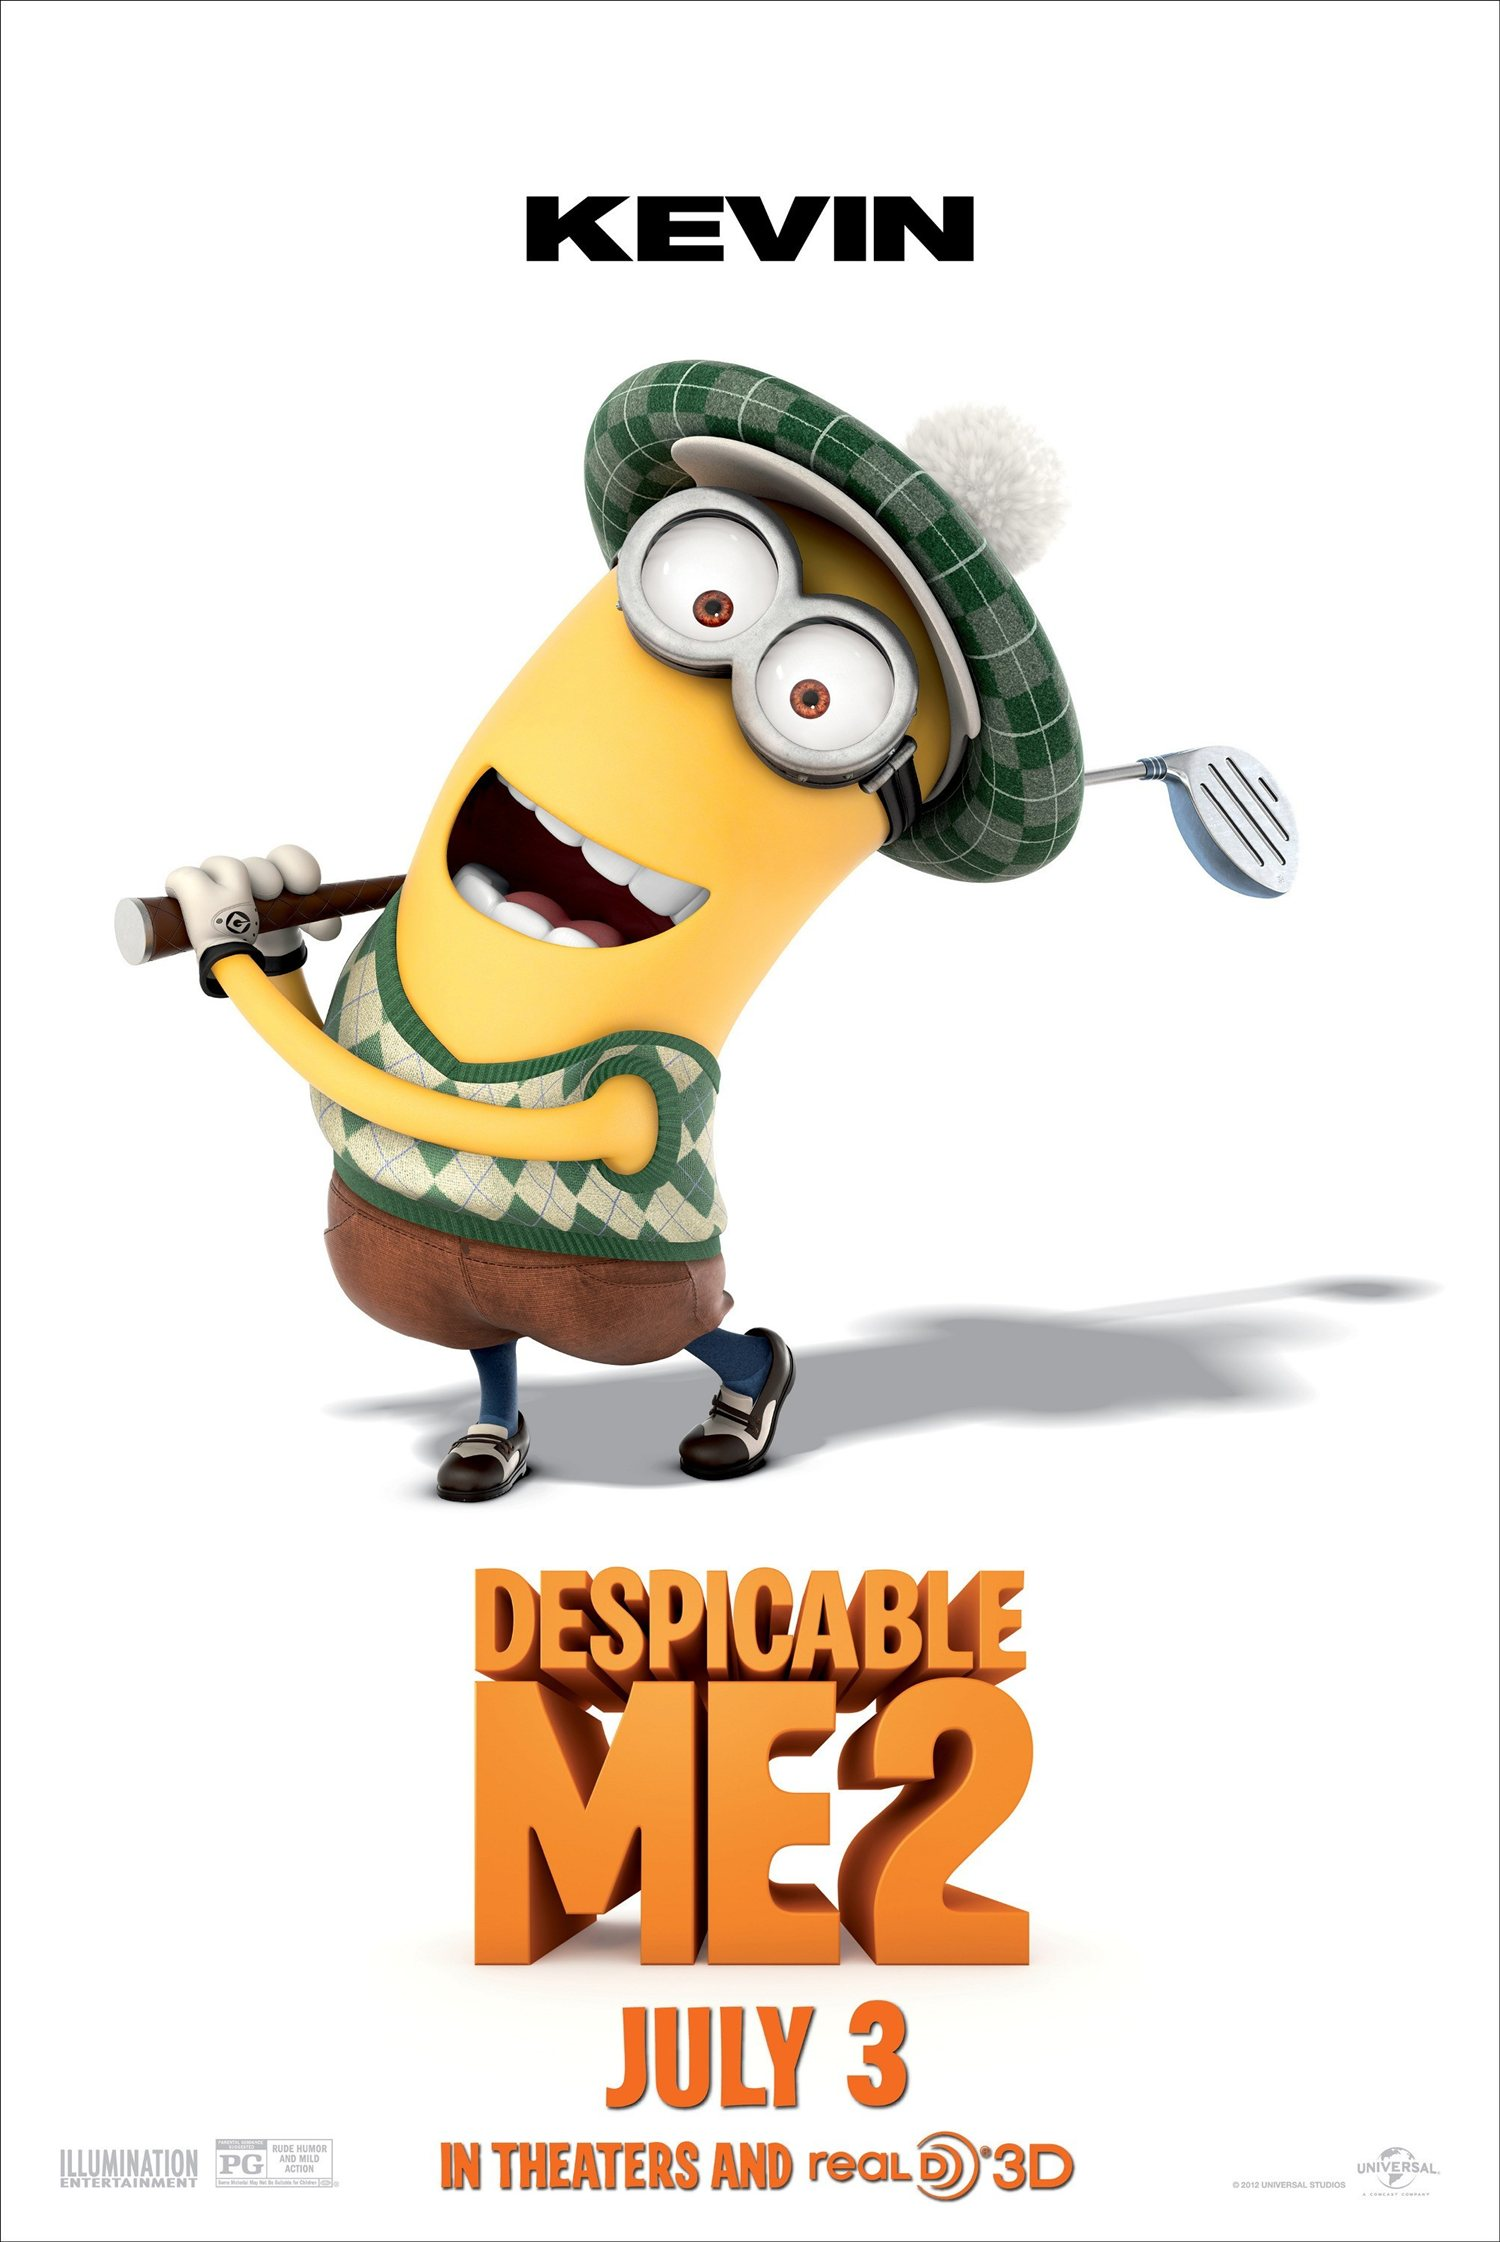 DESPICABLE ME 2 Kevin The Minion Poster